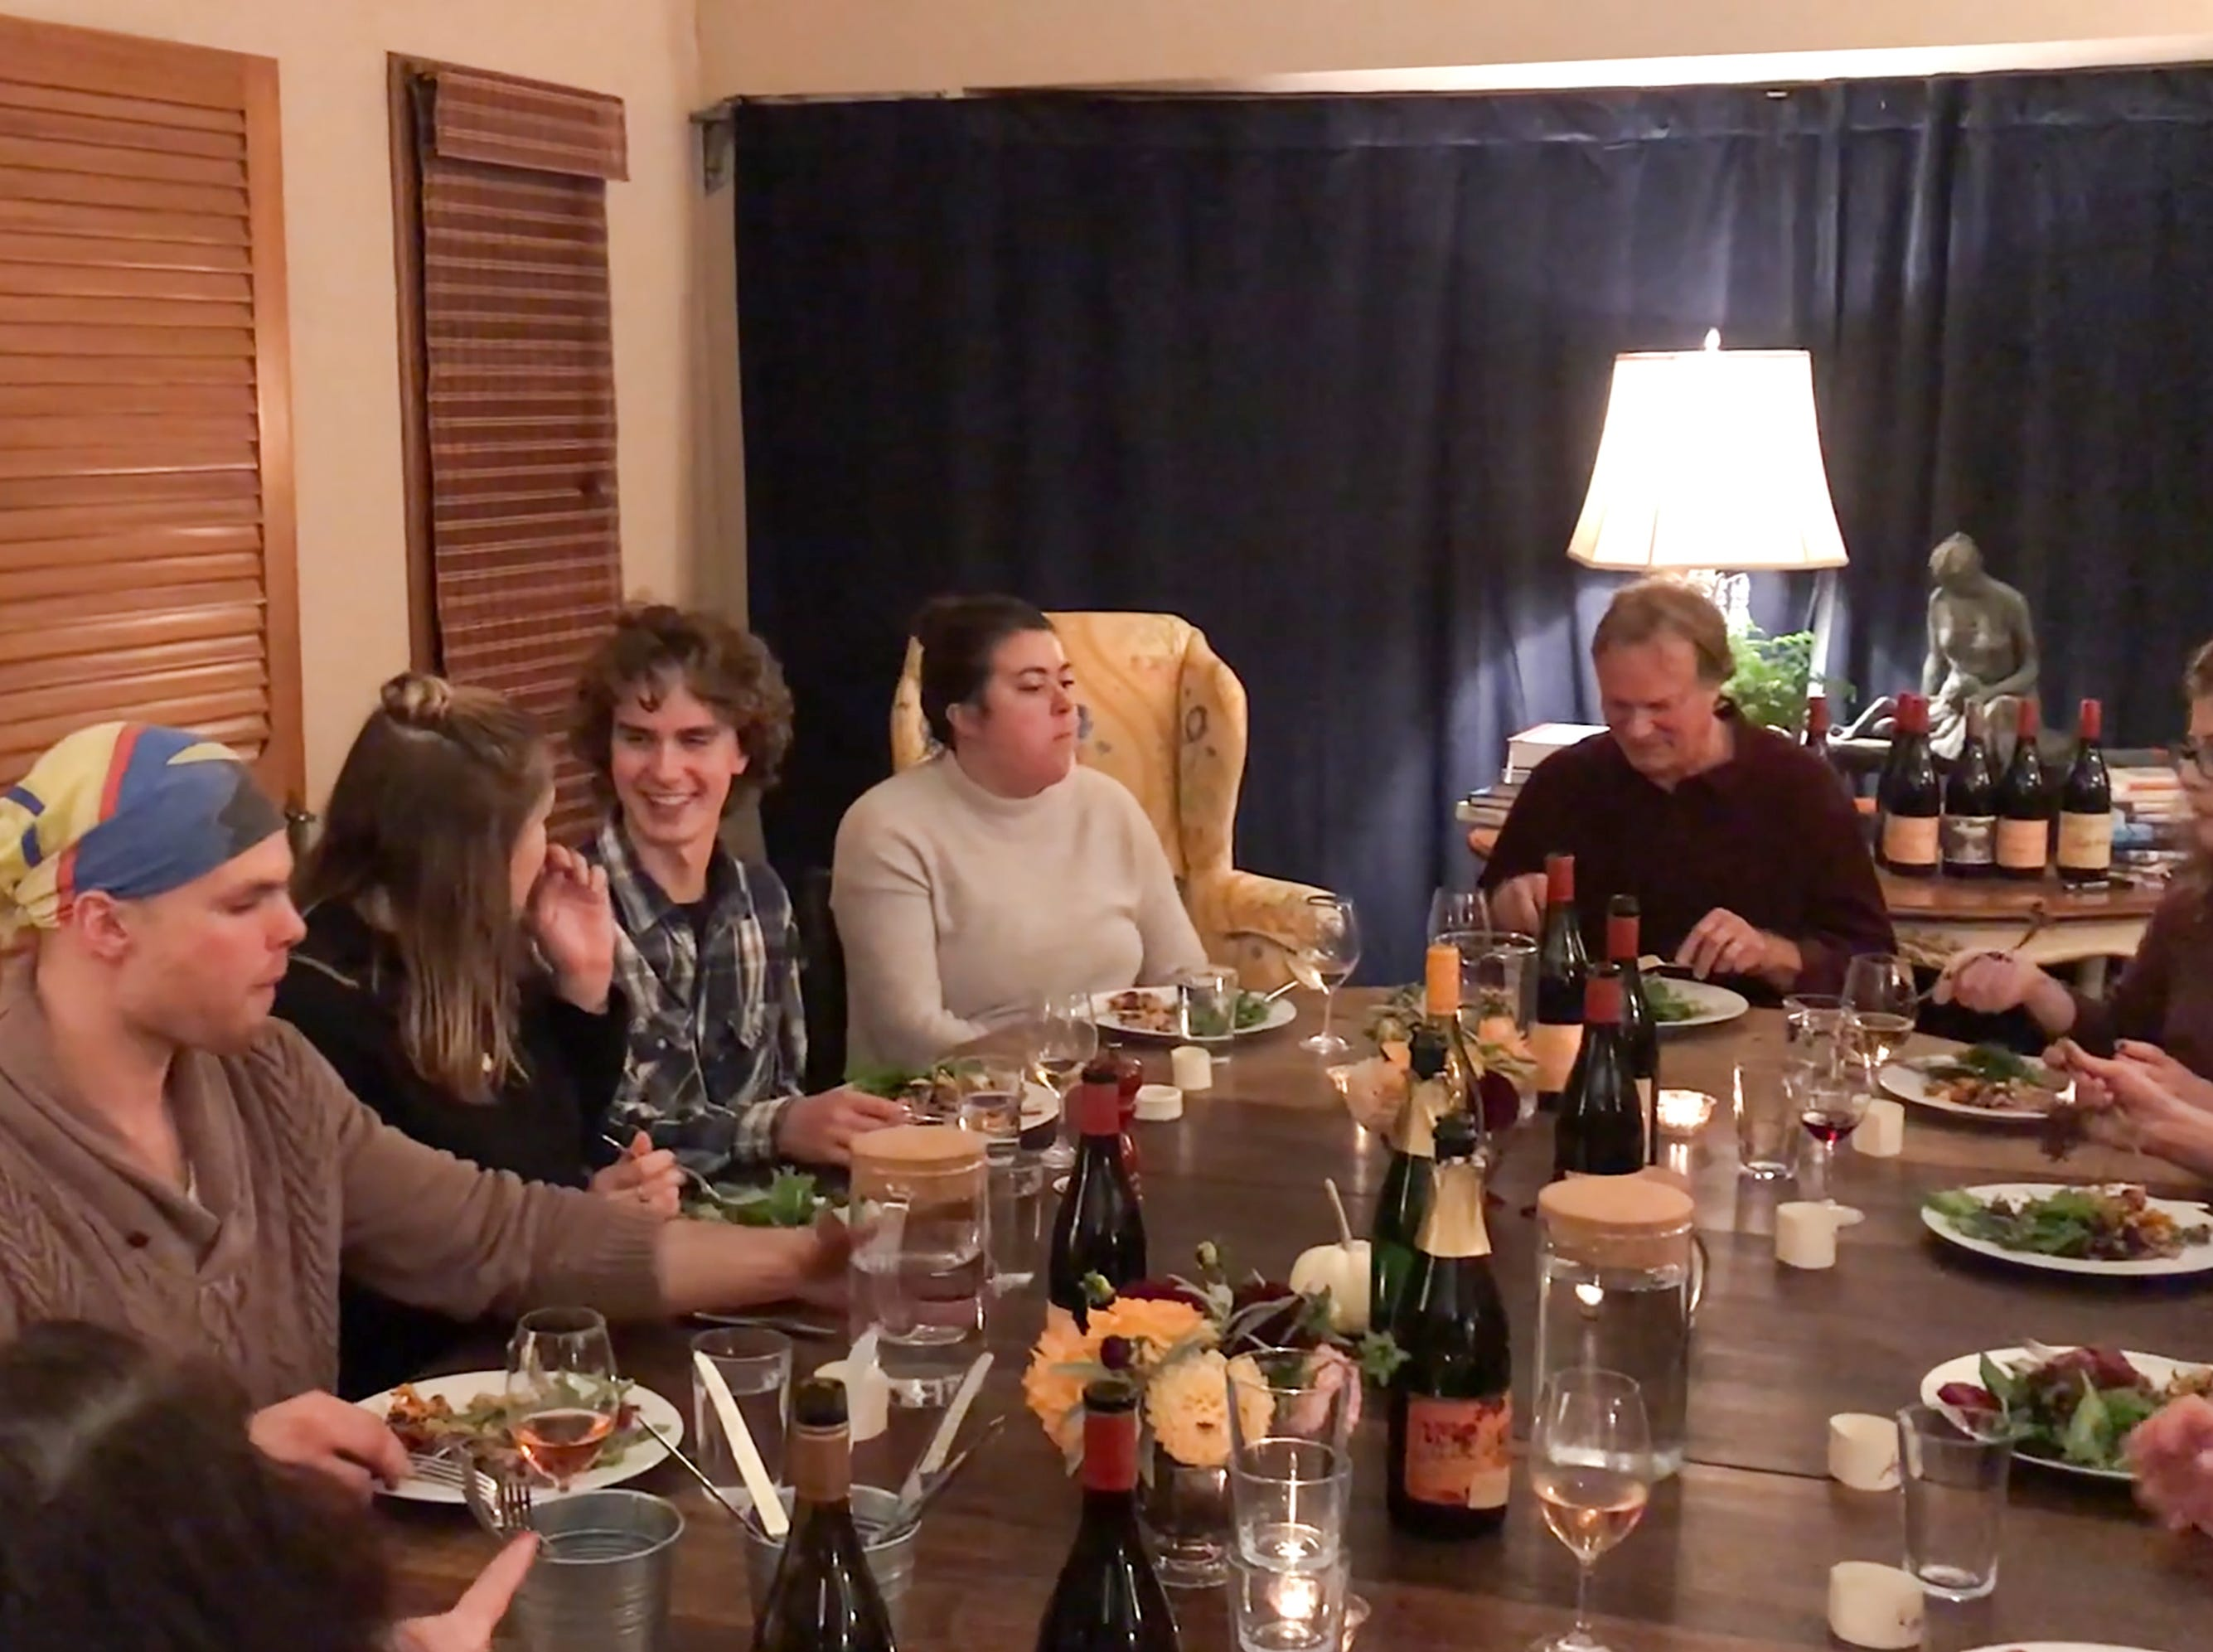 R. Stuart & Co. winery harvest workers enjoy a dinner prepared by Maria Stuart on Nov. 7, 2018, in McMinnville. Each guest gets a napkin ring with their name on it.